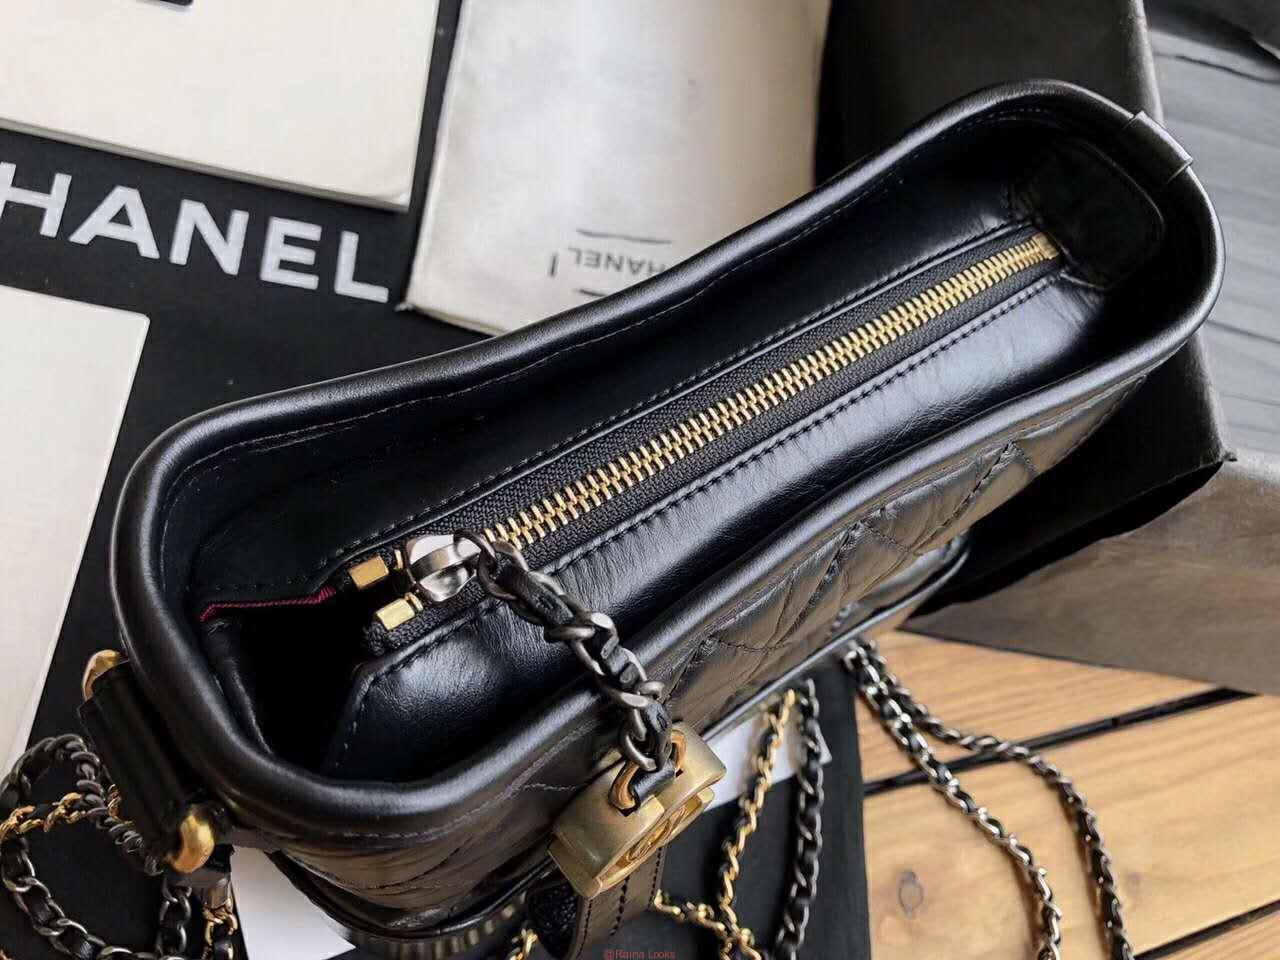 20181016221755 - There are something about Chanel Gabrielle wandering bag